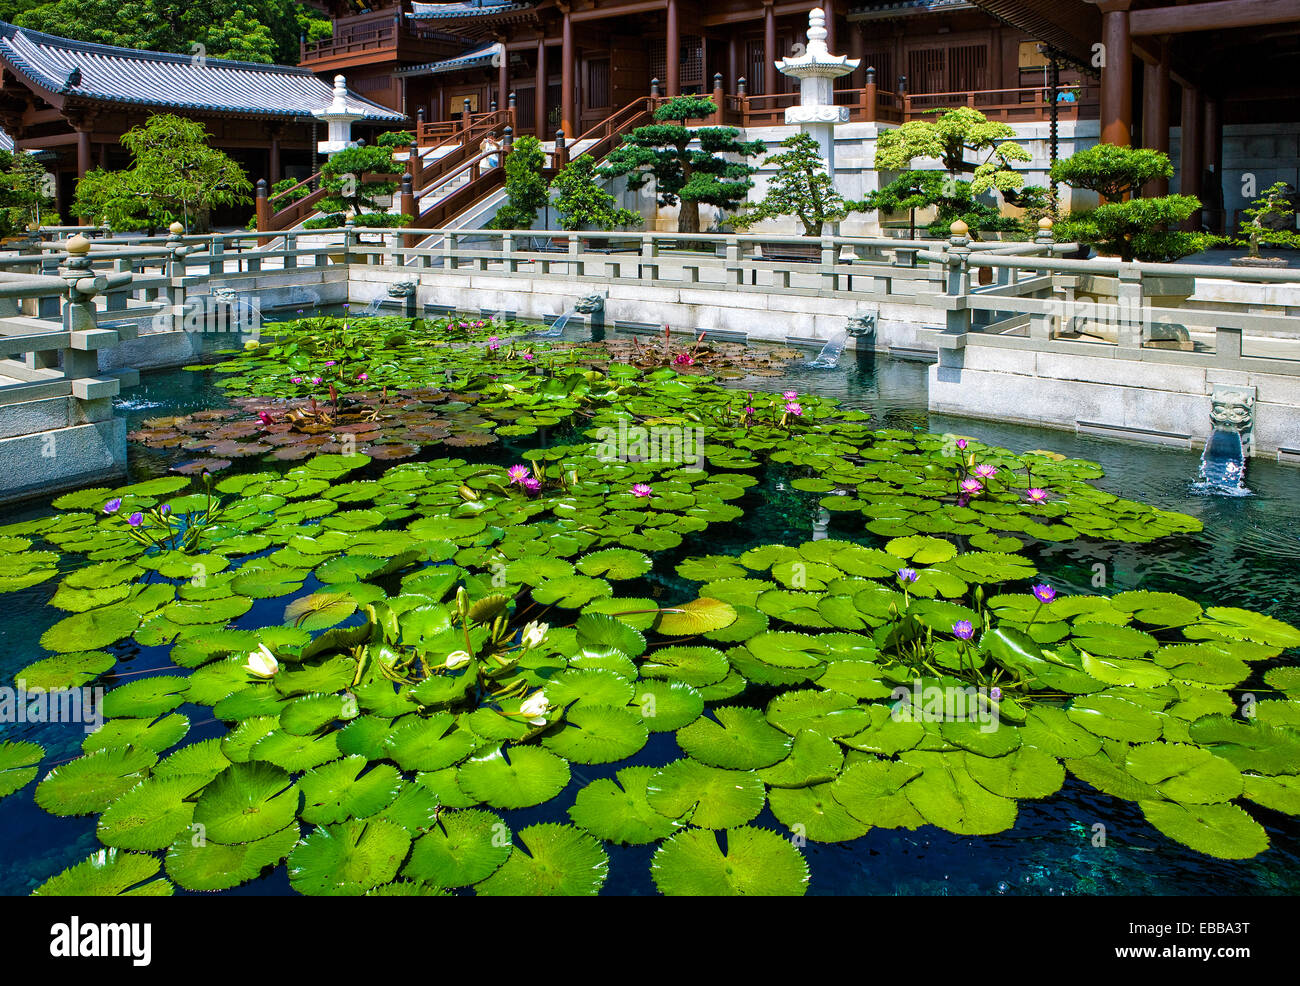 Hong Kong, the pond with flowers of the Chi Lin antique monastry in the new Kowloon quarter - Stock Image